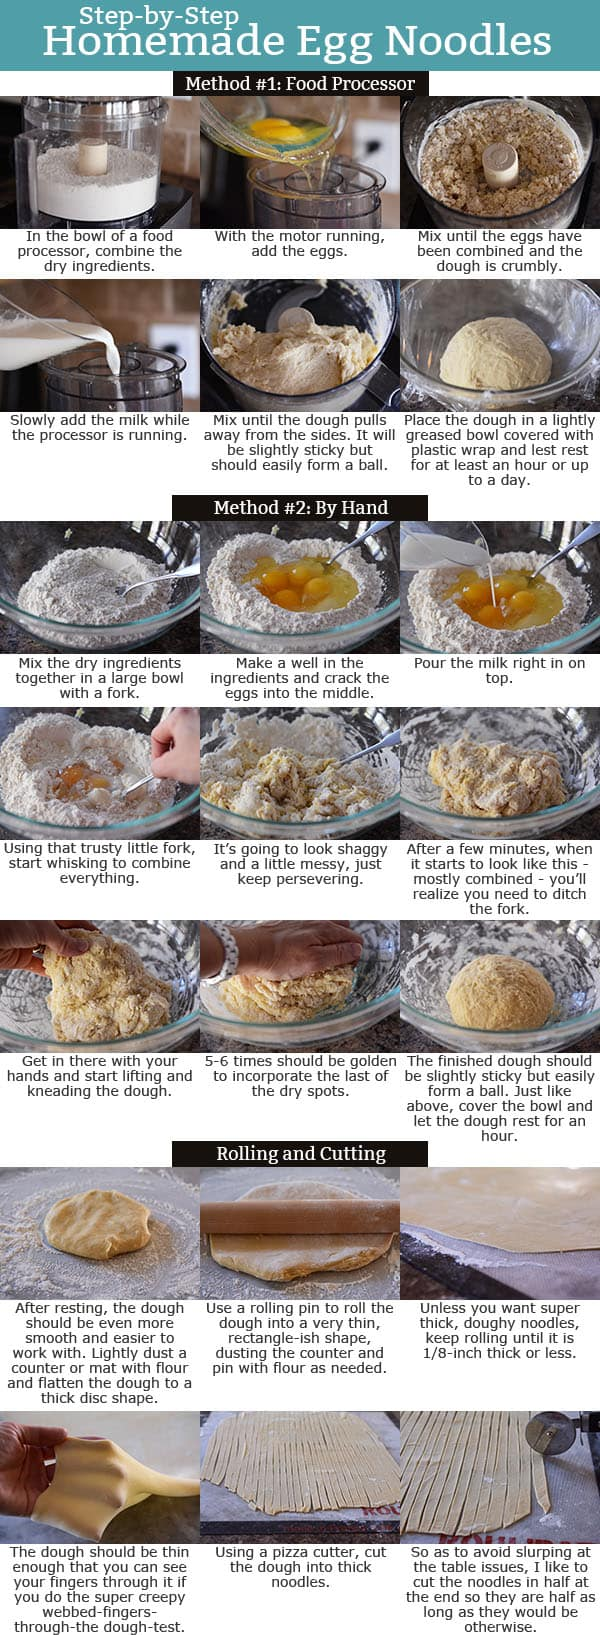 A step-by-step picture collage of how to make homemade egg noodles.